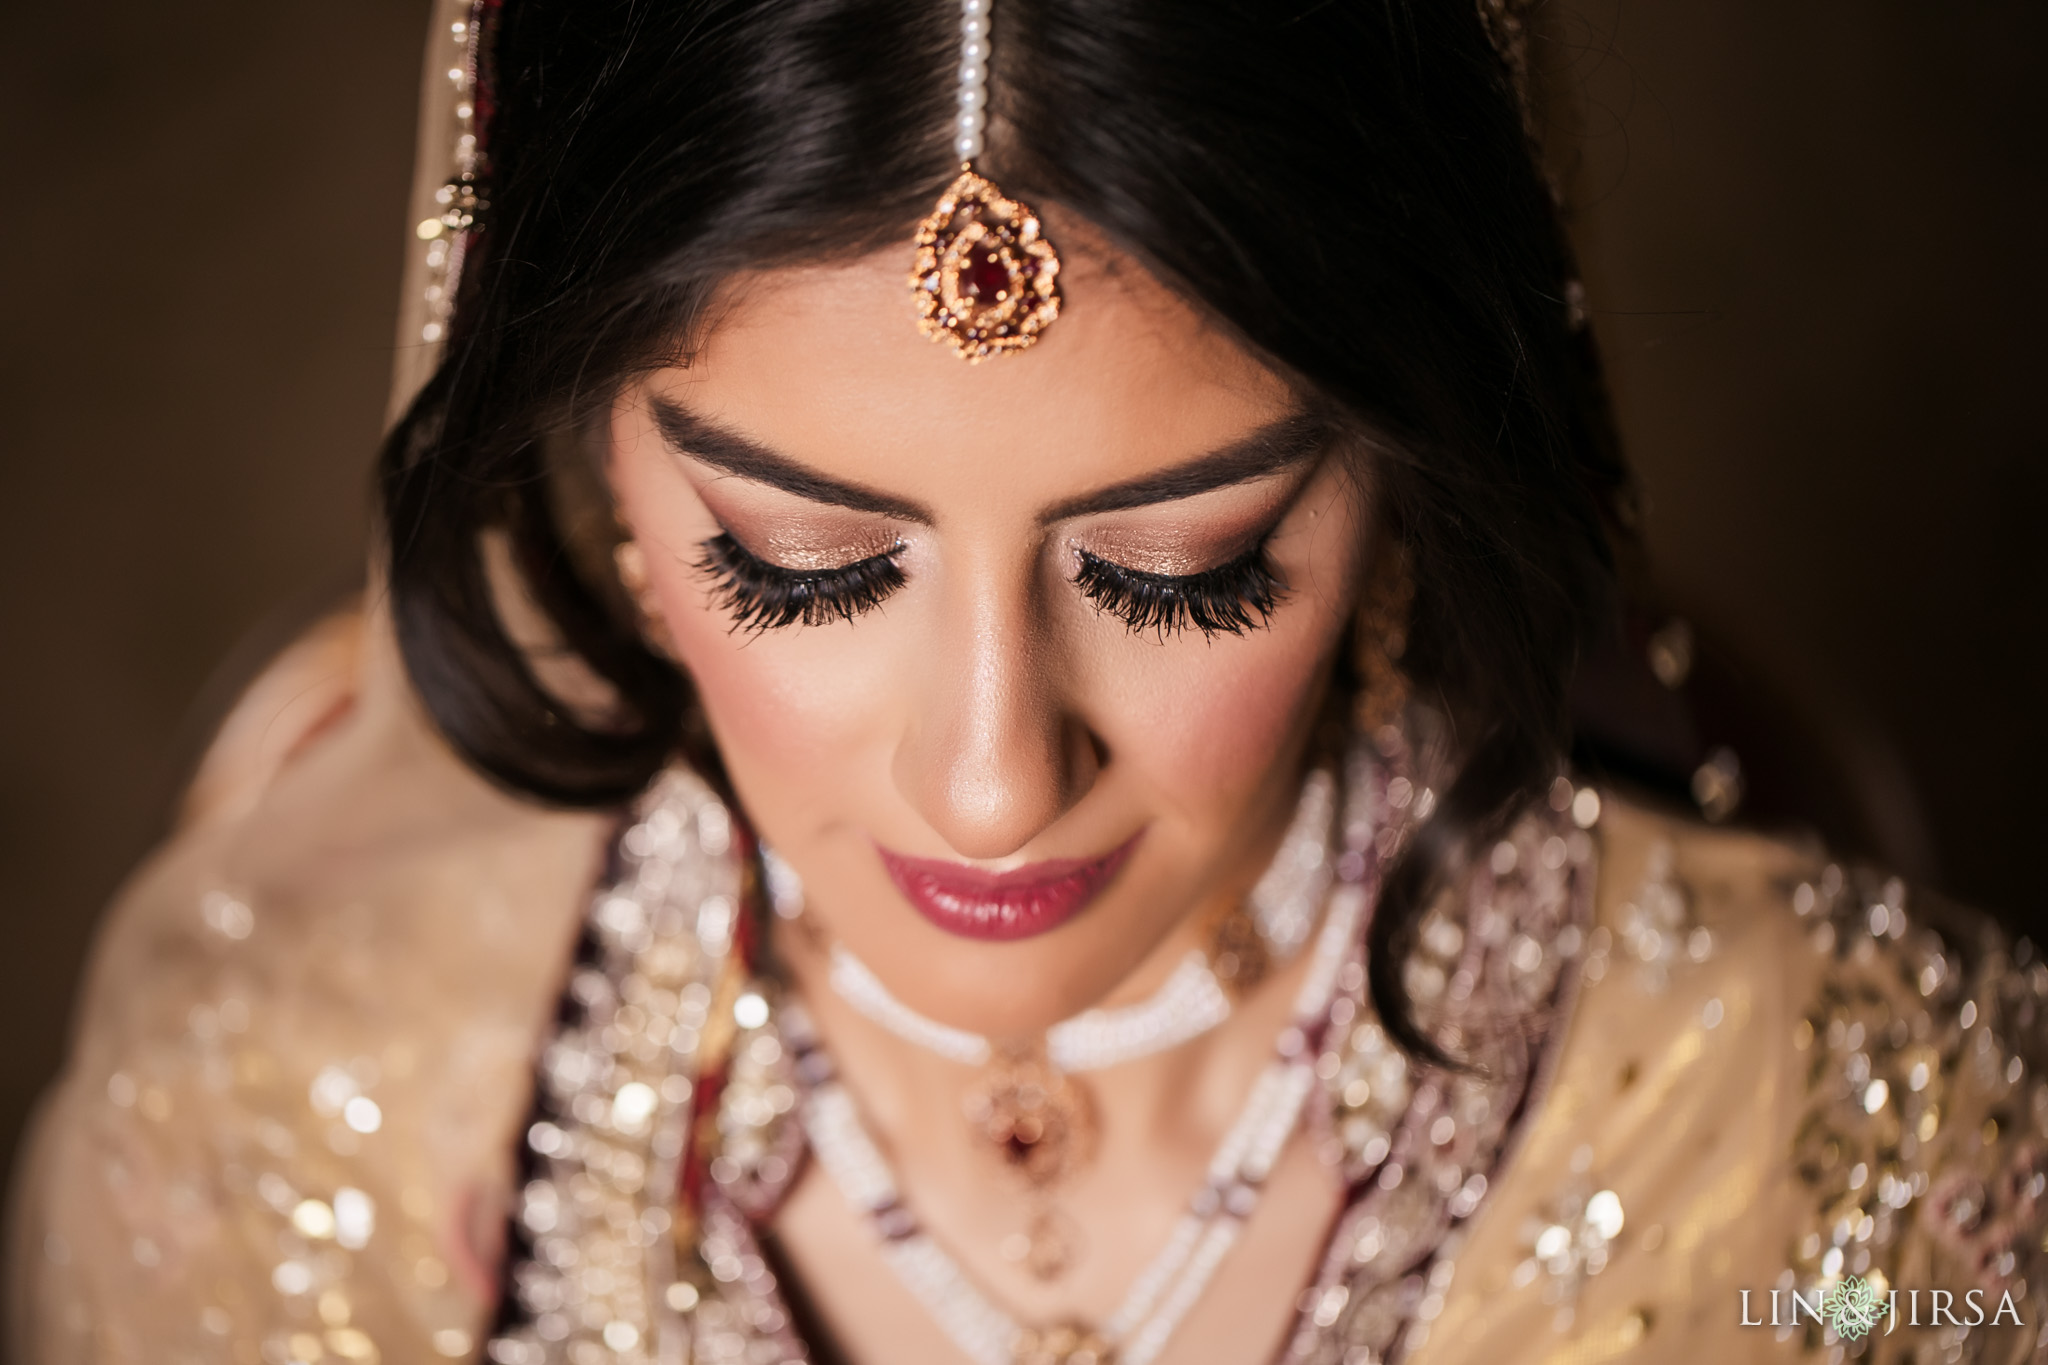 004 four seasons westlake village muslim wedding photography